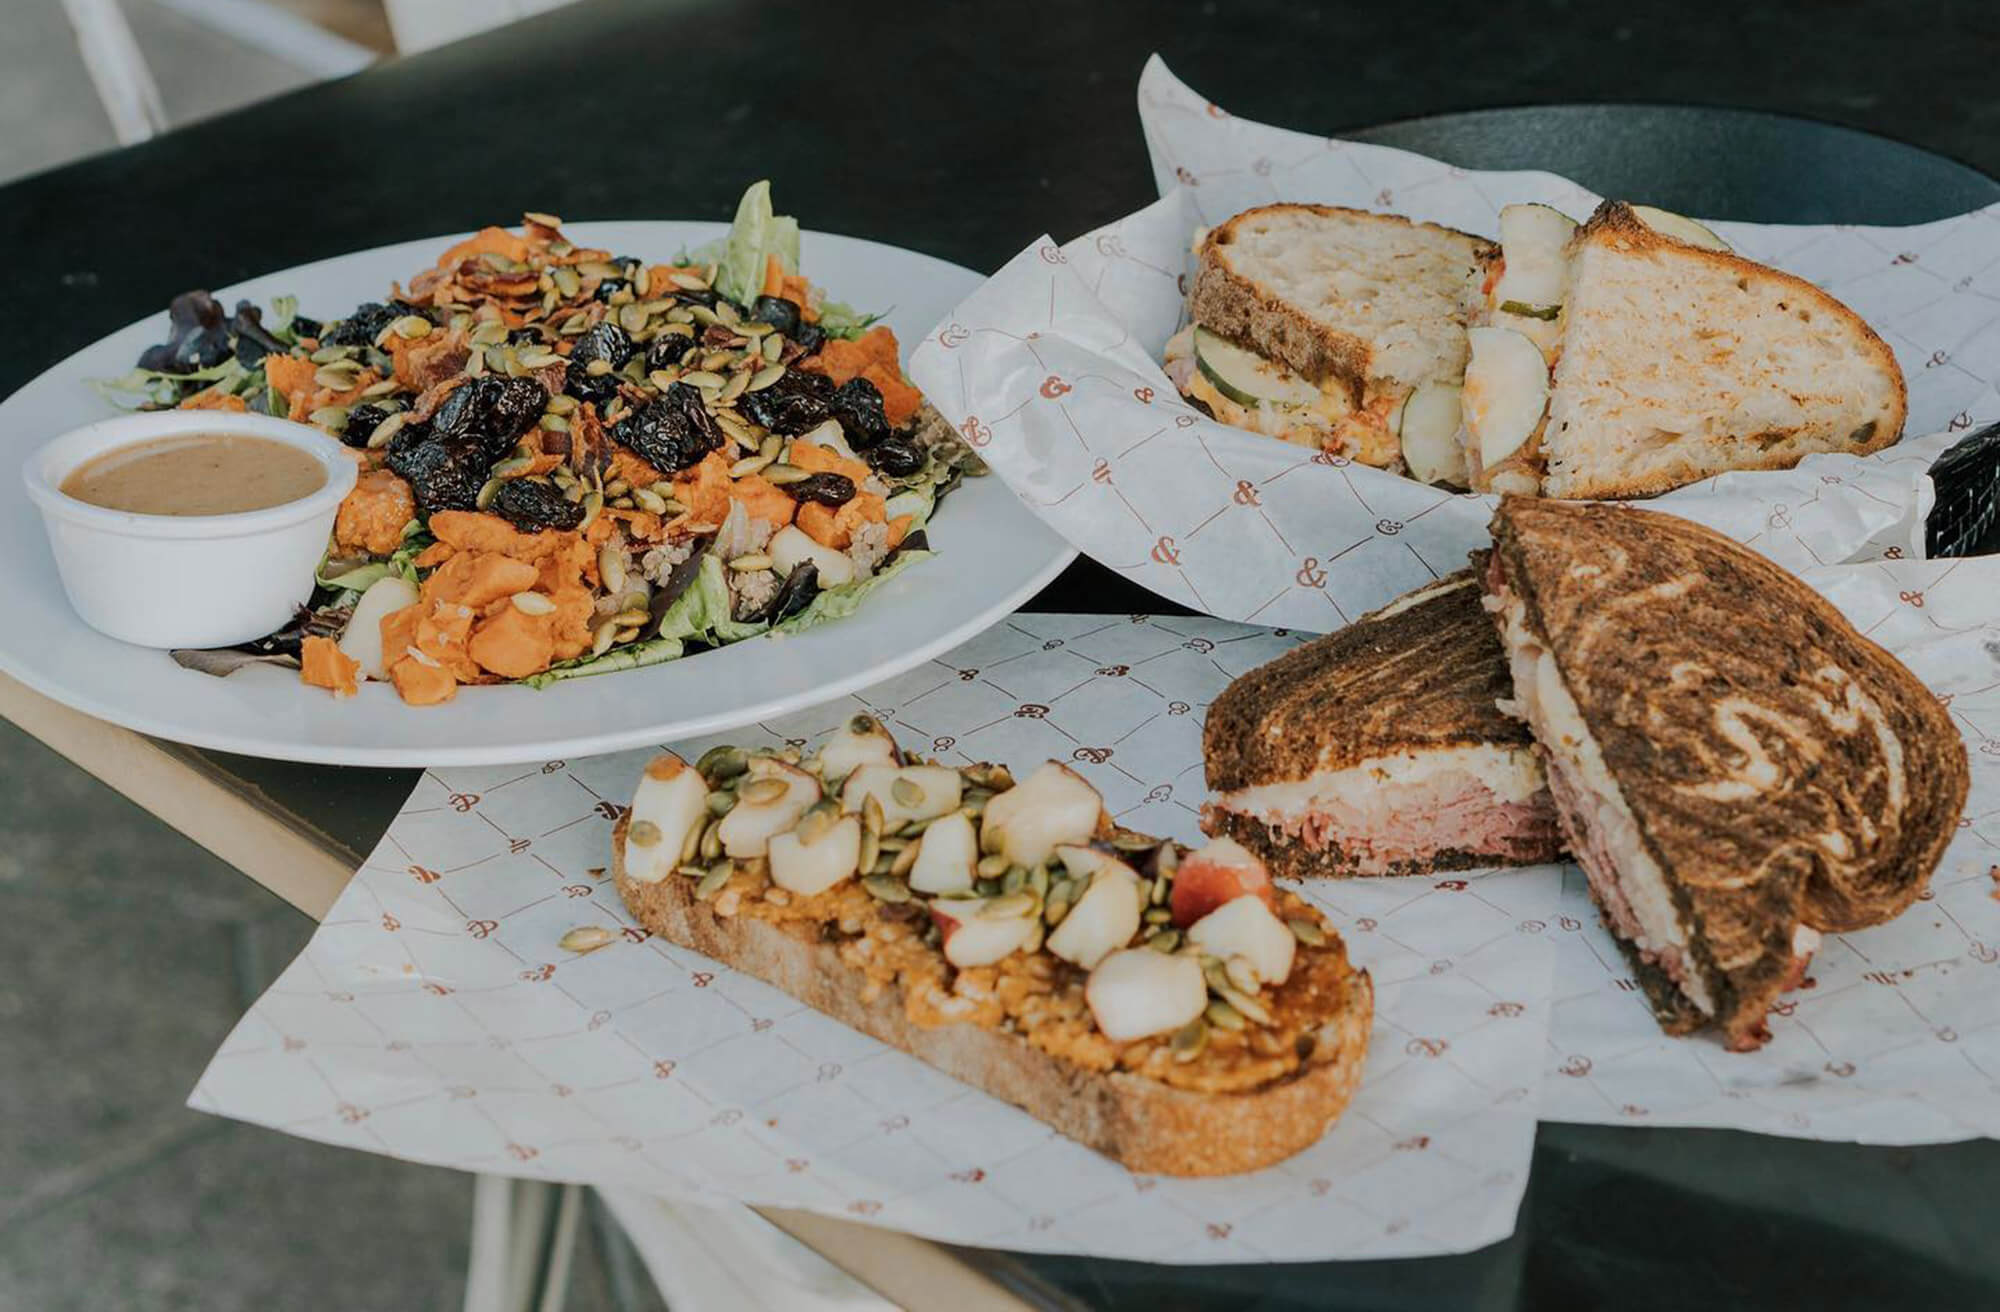 salads and sandwiches at Black & Brew Coffee House Bistro in Lakeland, FL